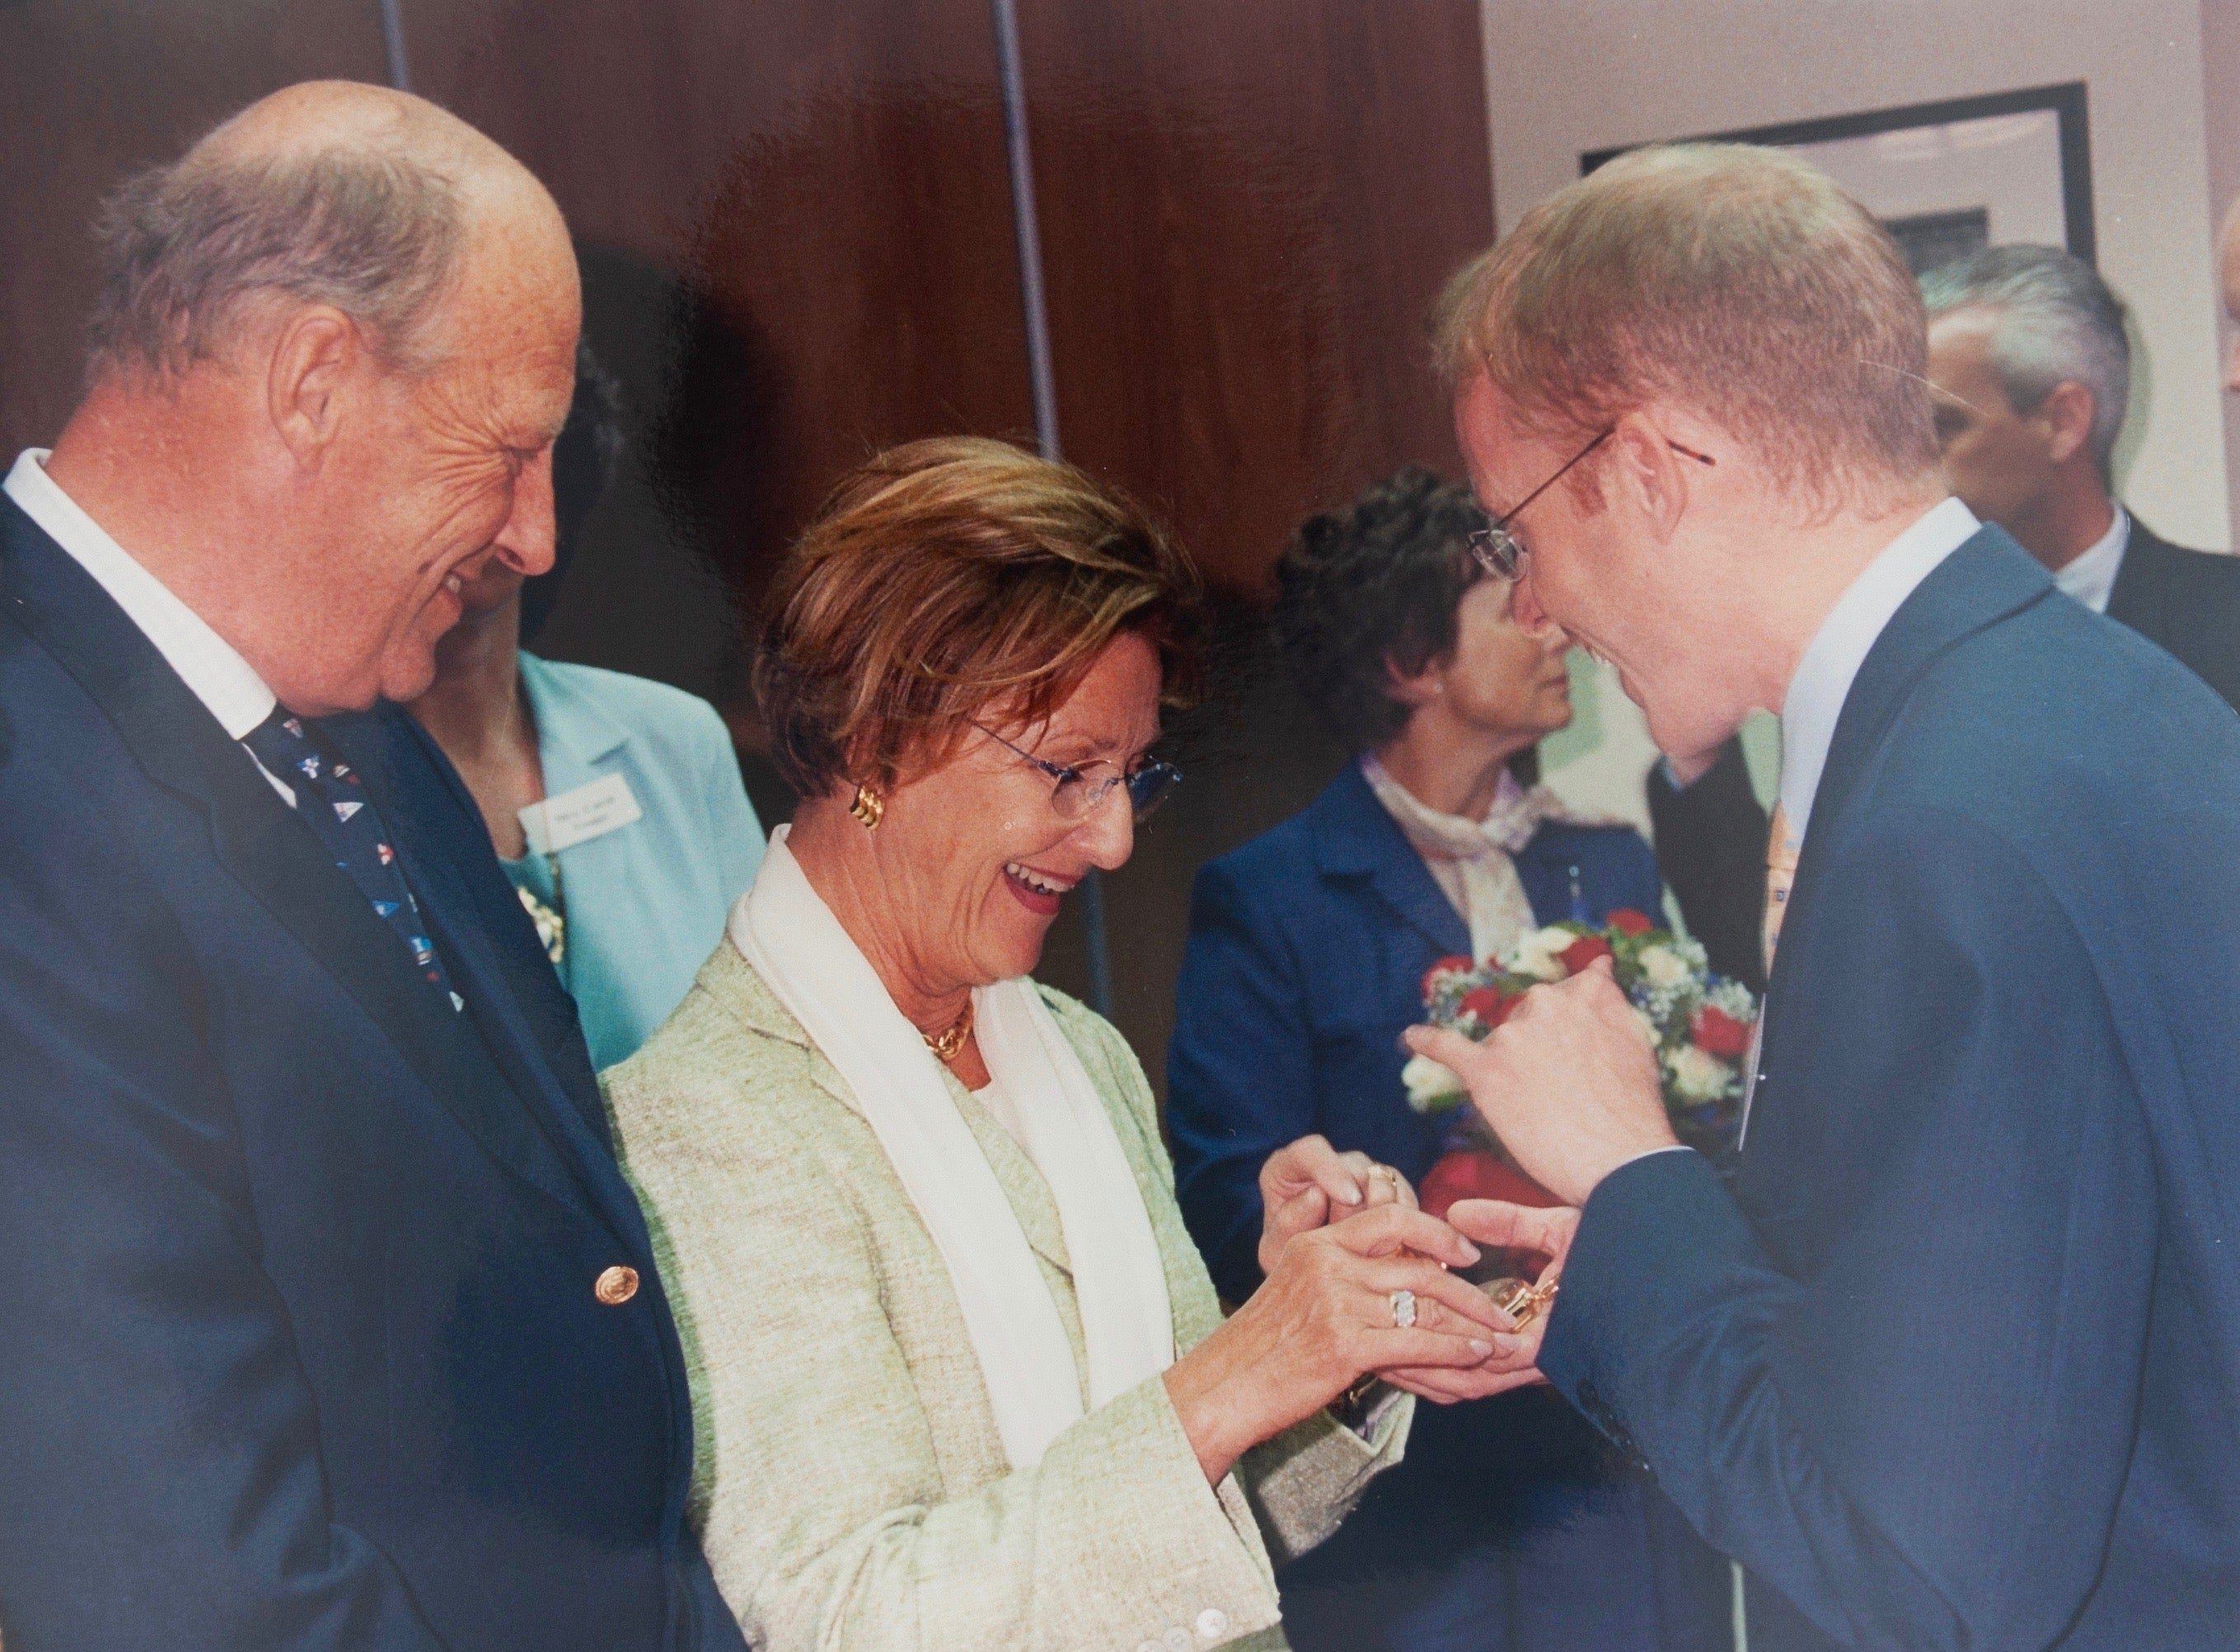 Roger W. Smith watchmaker showing the King and Queen of Norway a watch on their visit to the Isle of Man for A Collected Man London